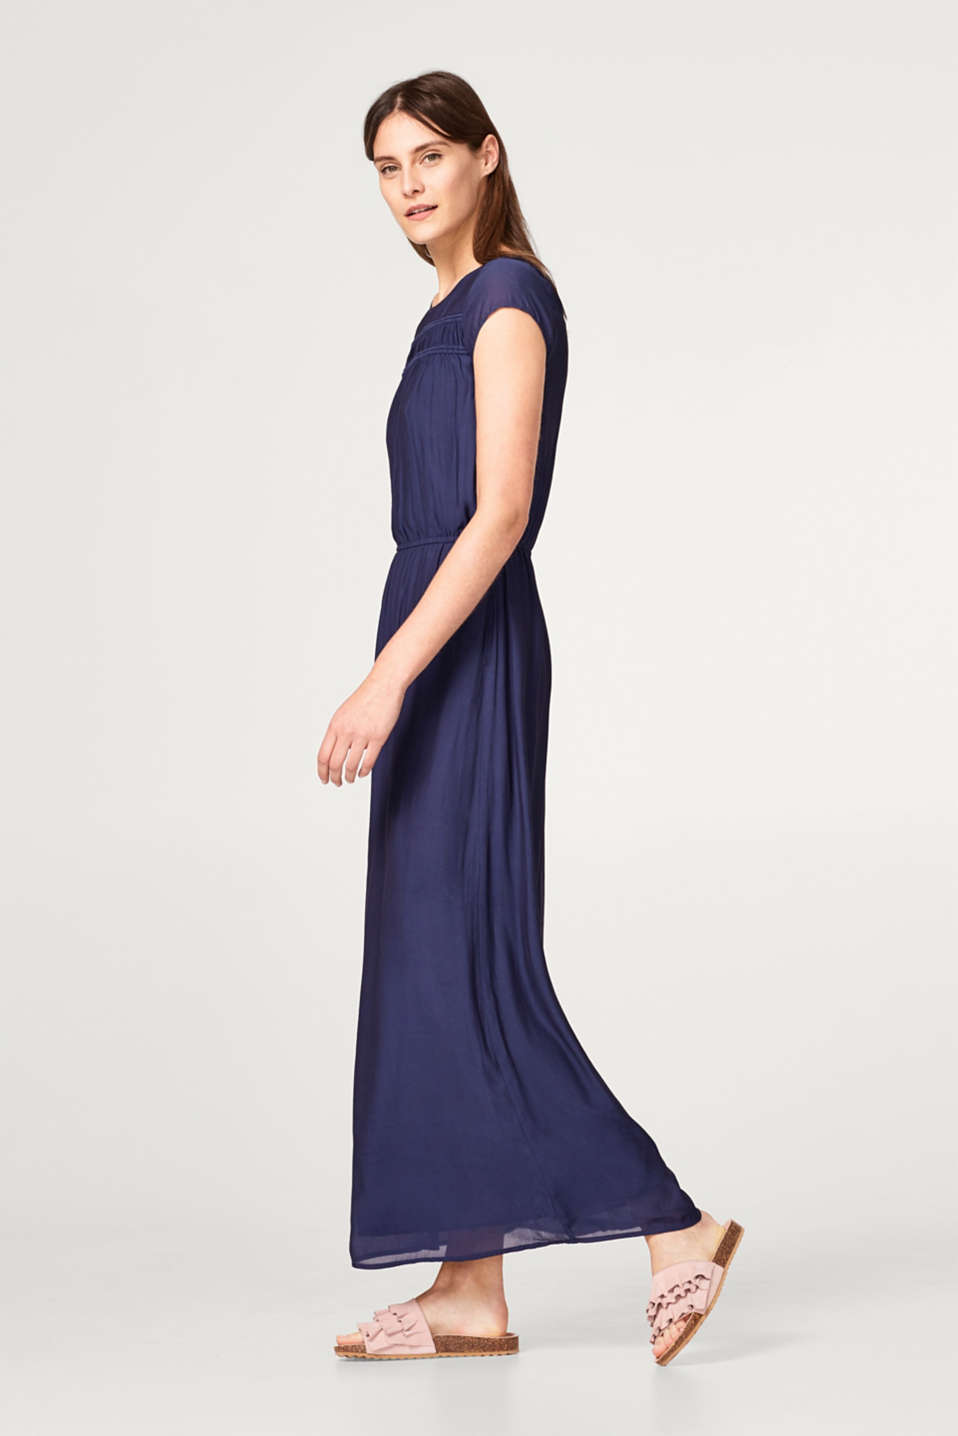 Esprit - Flowing crêpe dress with a gathered decorative trim